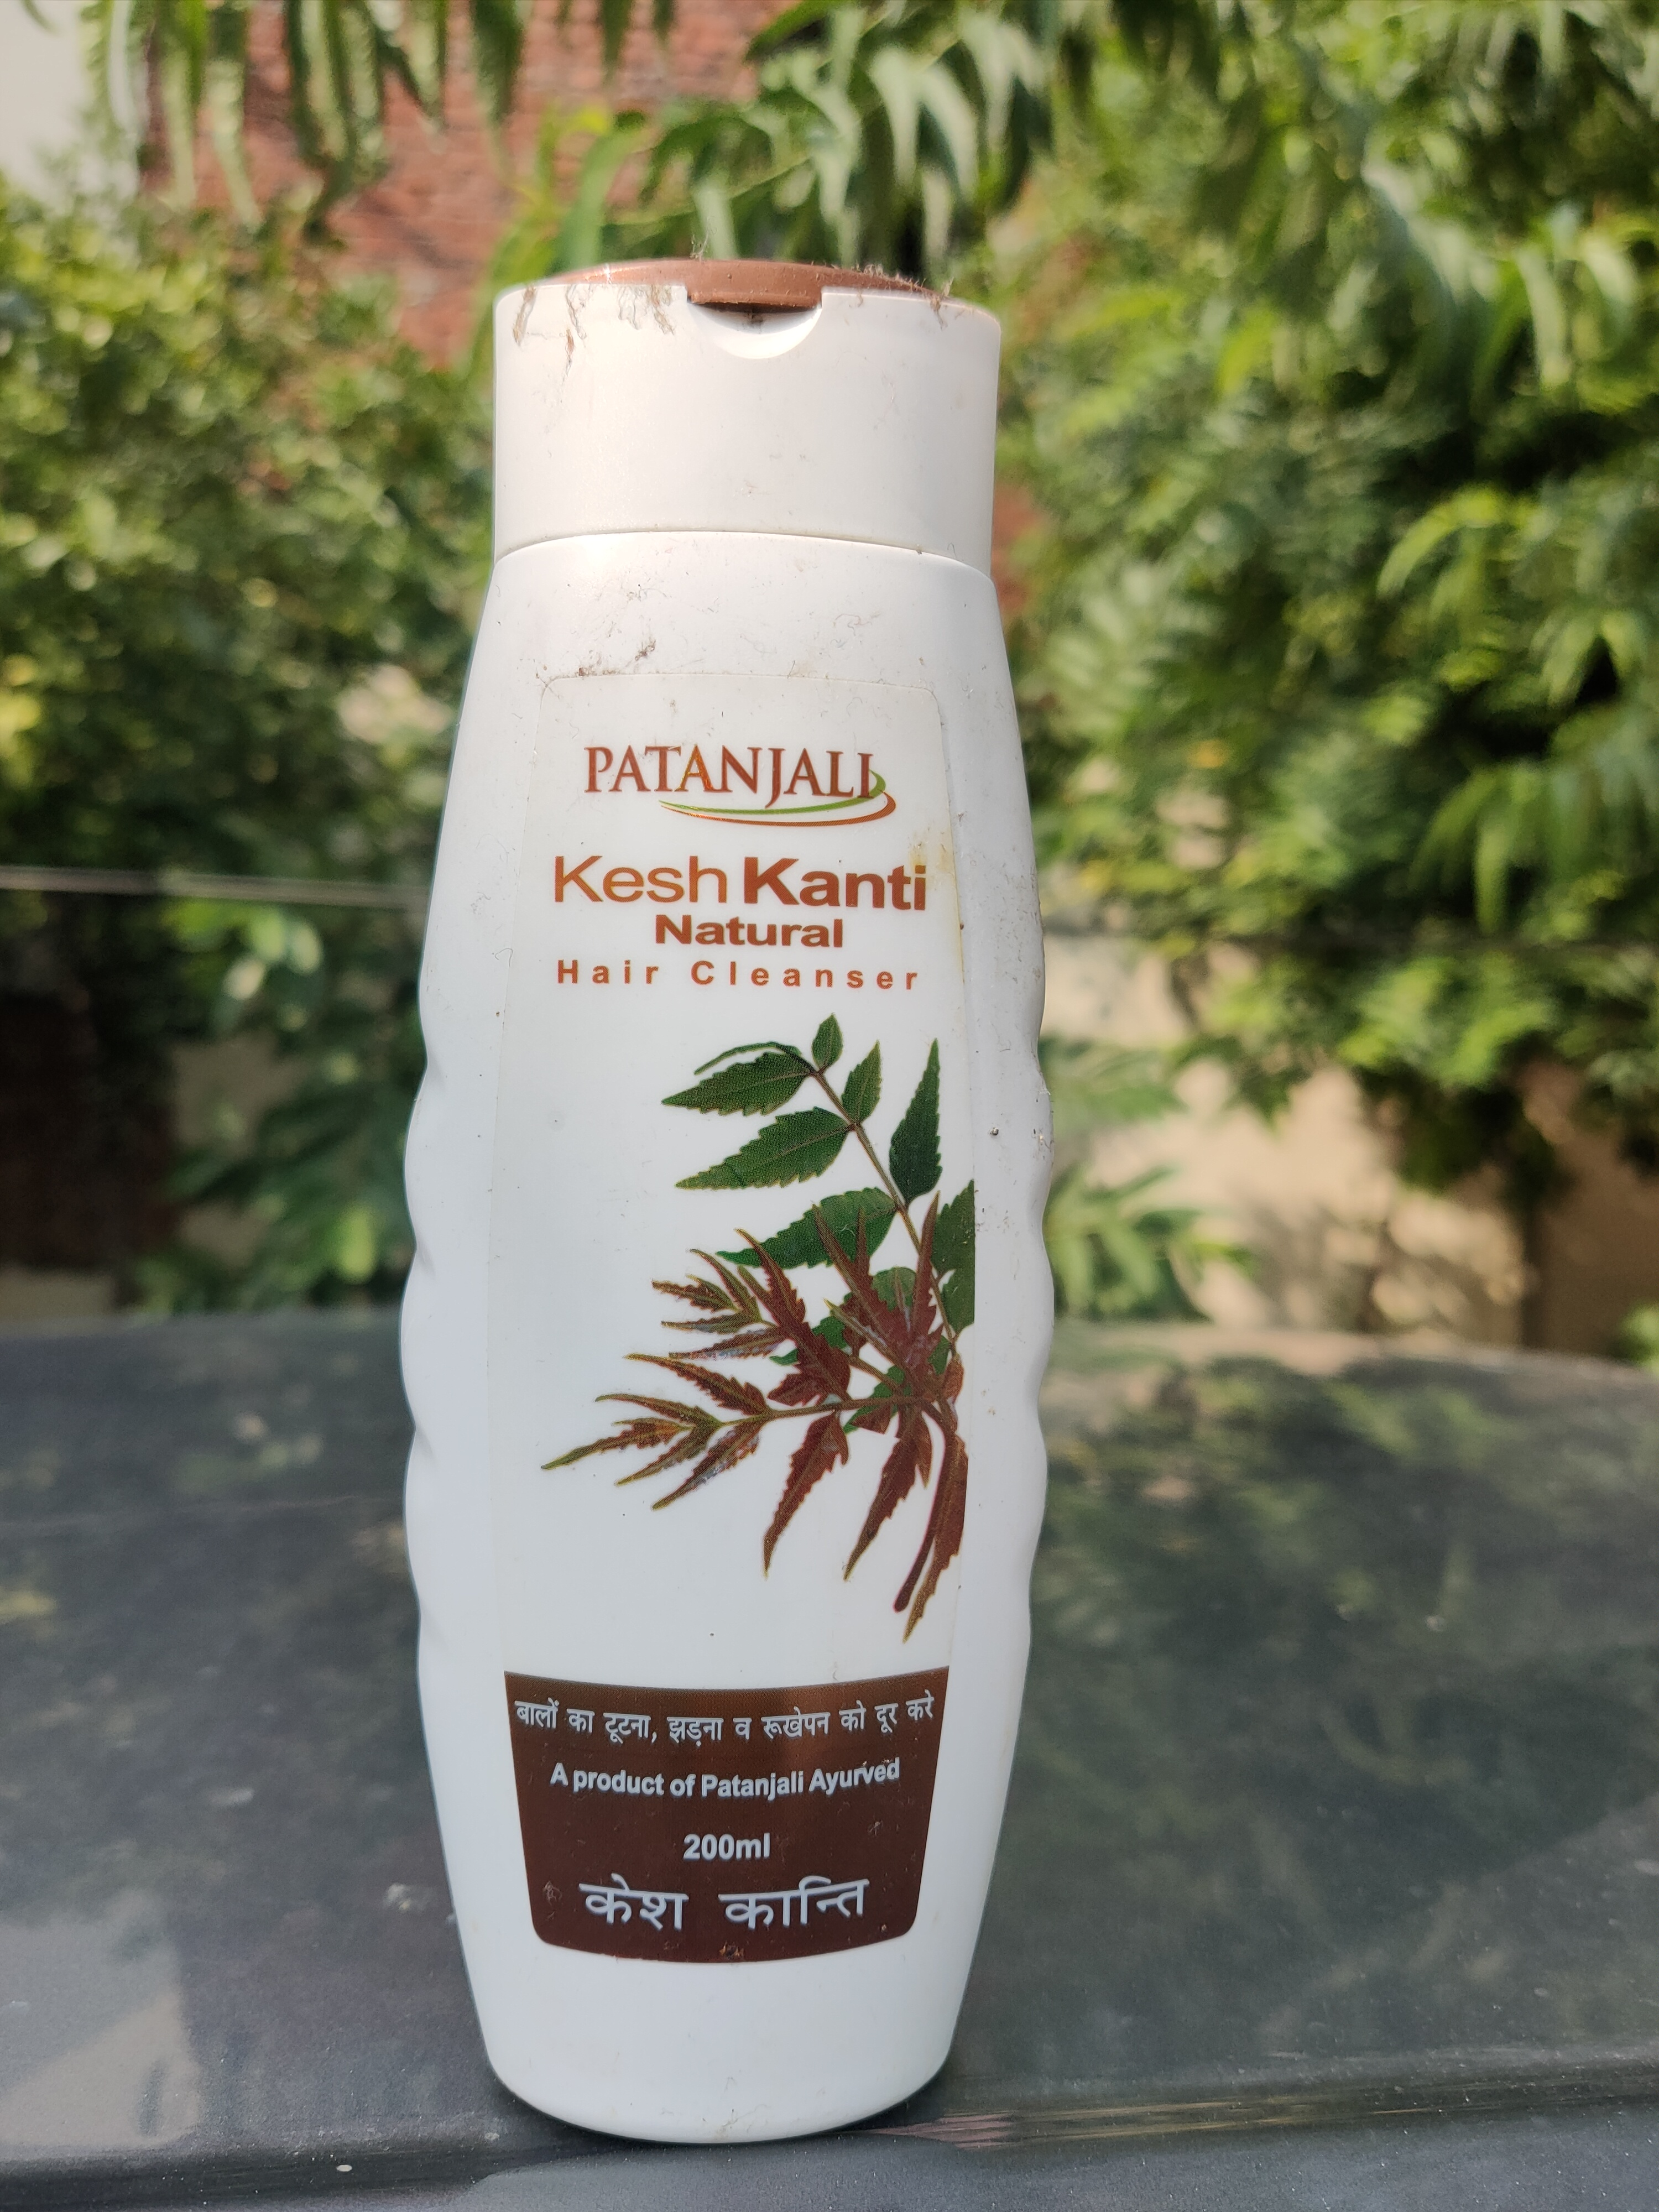 Patanjali Kesh Kanti Natural Hair Cleanser -Controls Hairfall and Greying-By suhanigaba